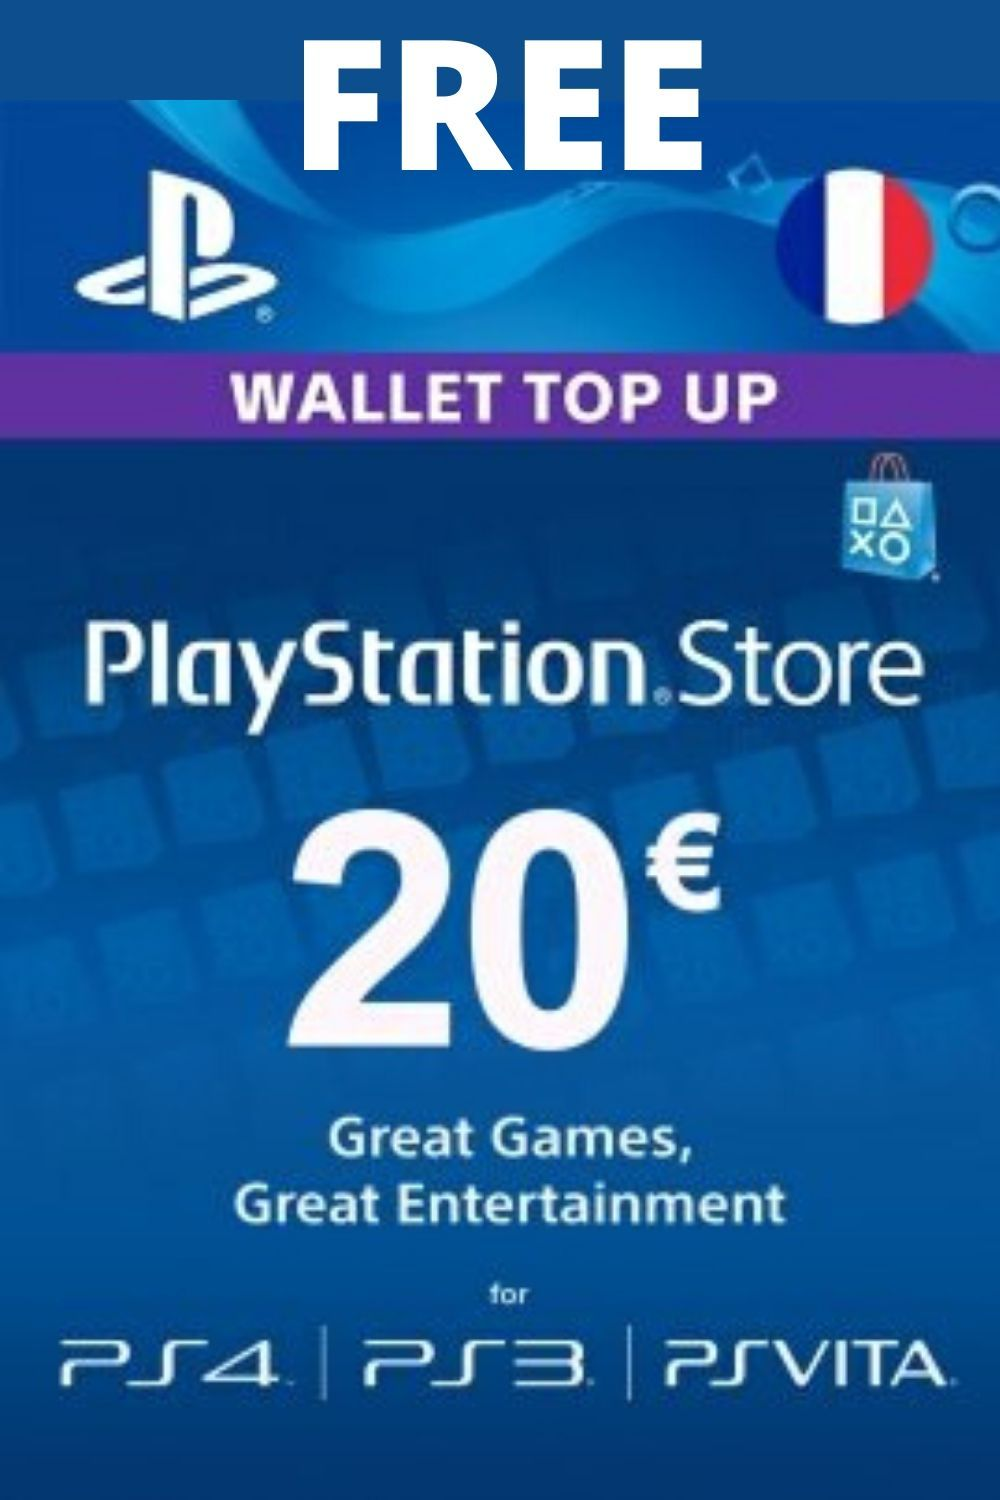 aa22cfdb9529cb1cc237c2e9f97f20a2 - How To Get Free Money In Your Ps4 Wallet